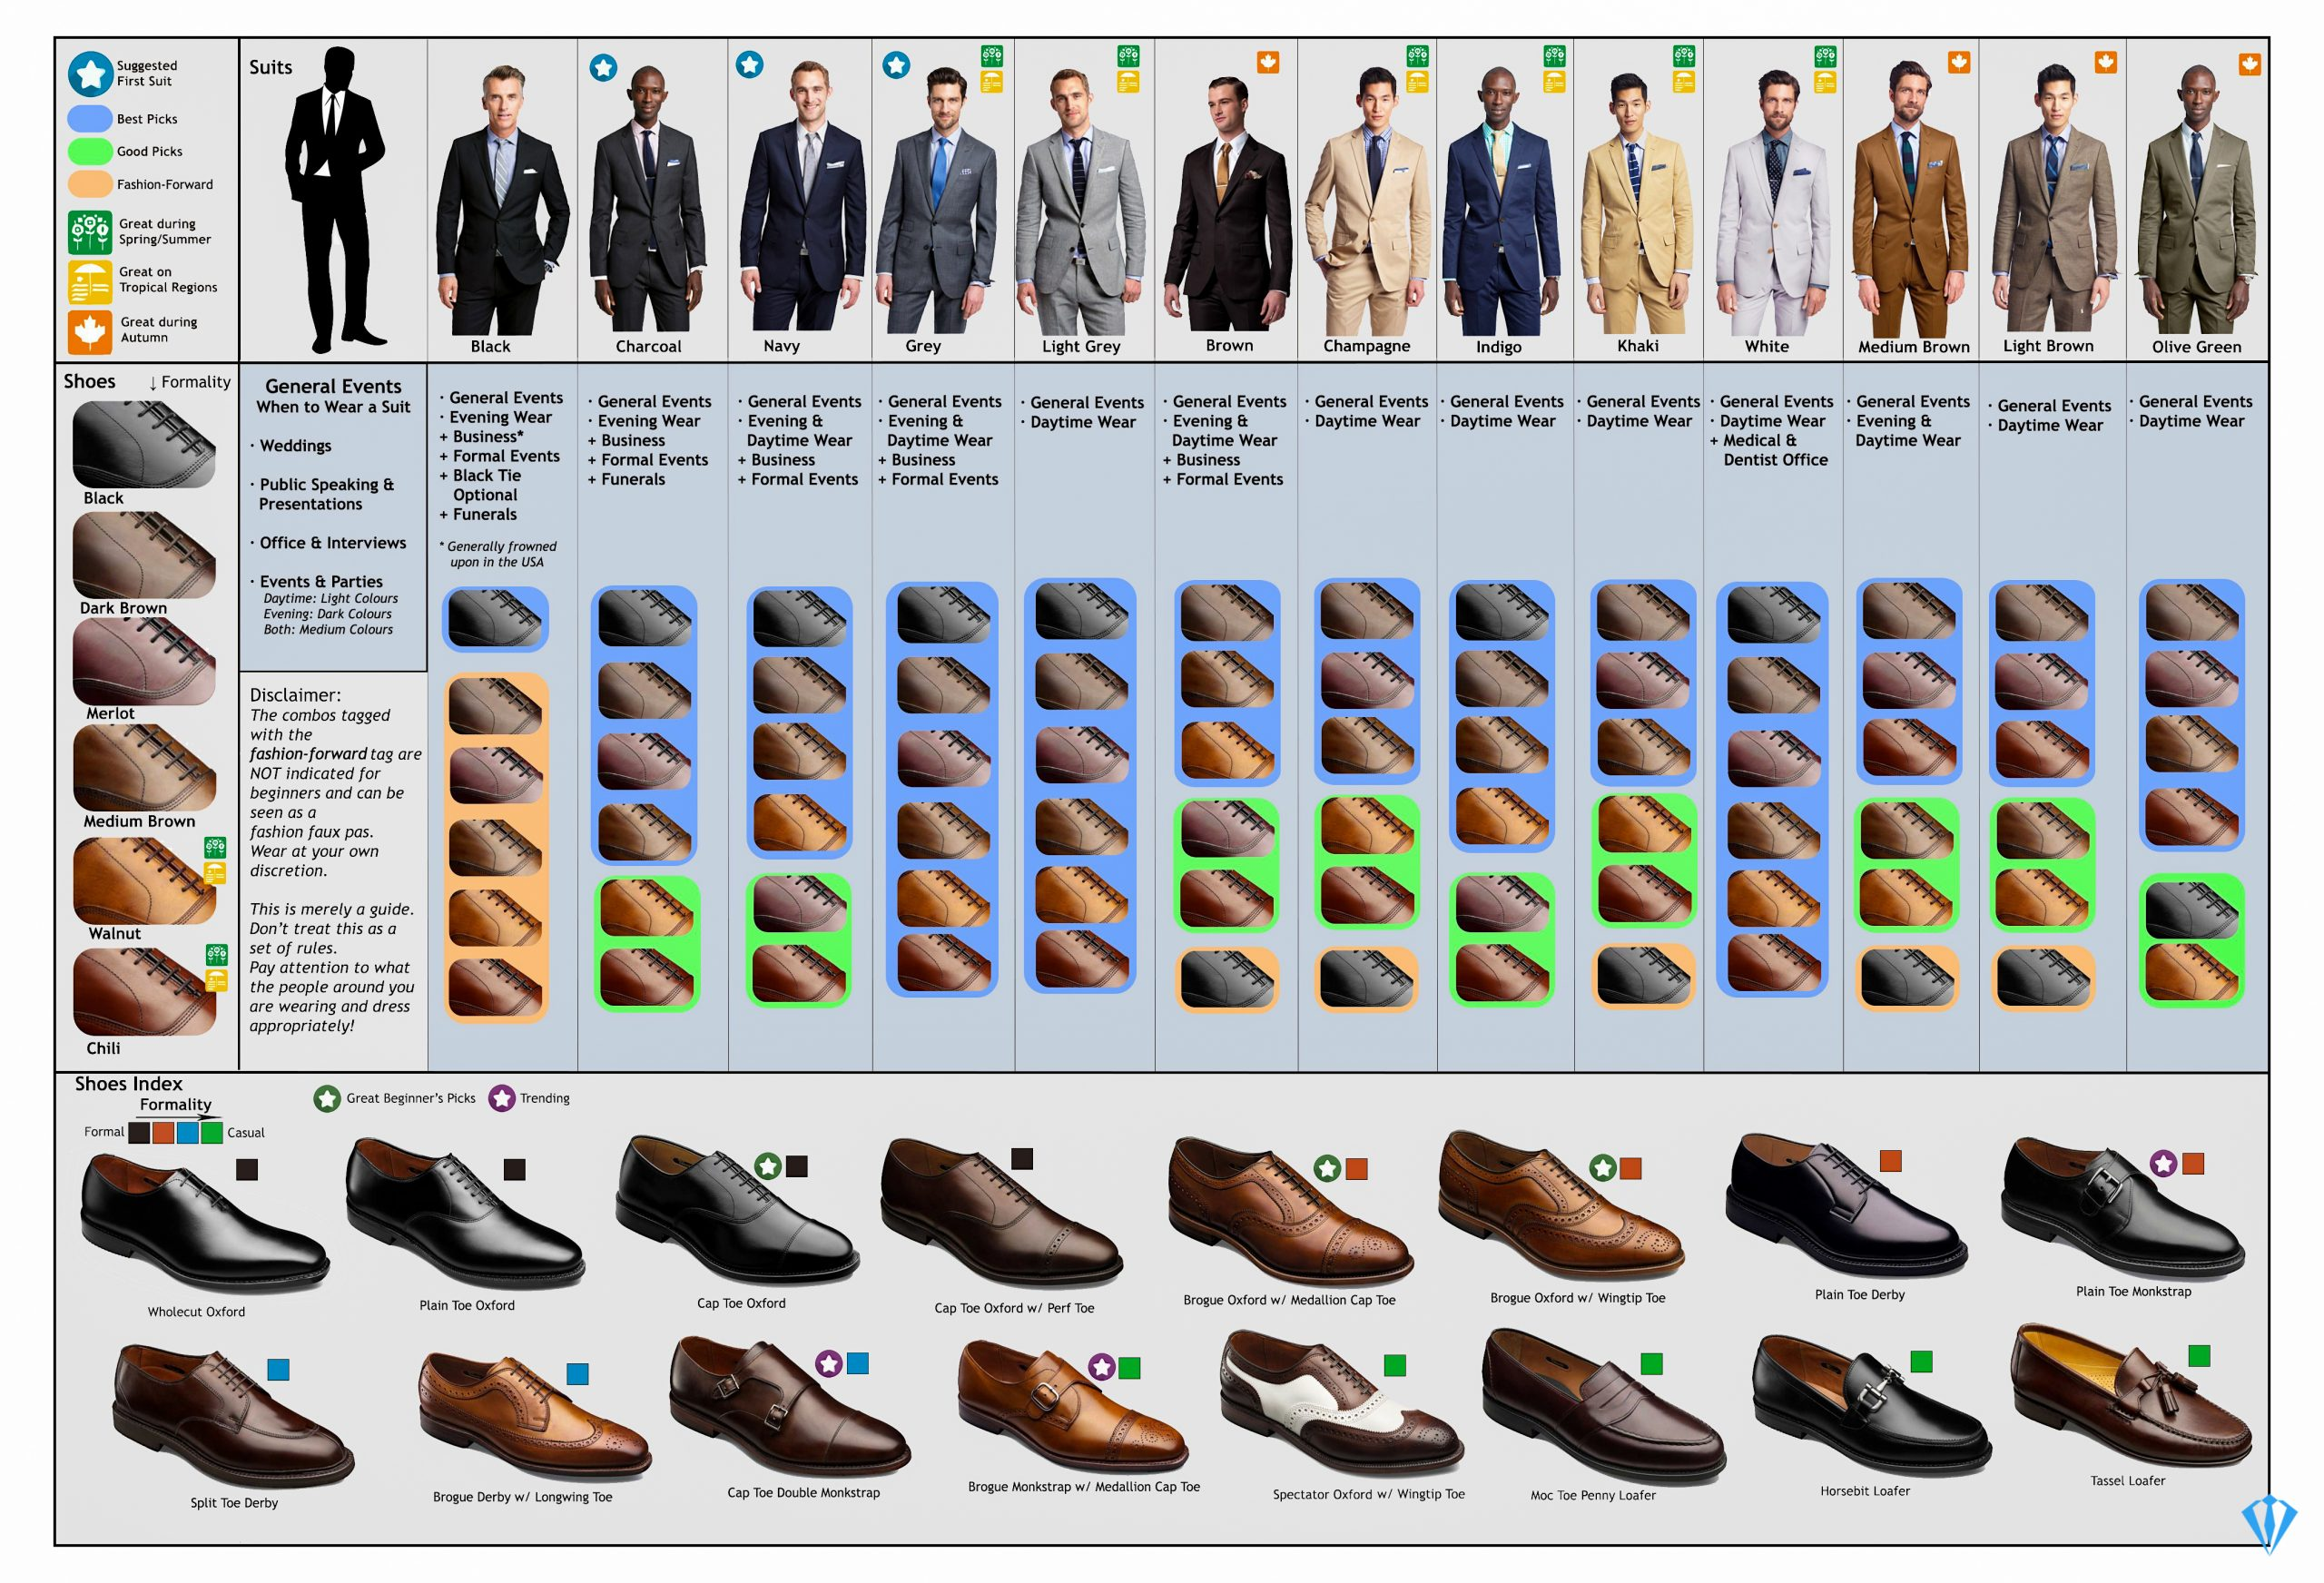 Suits & shoes complete occasion and formality color guide match